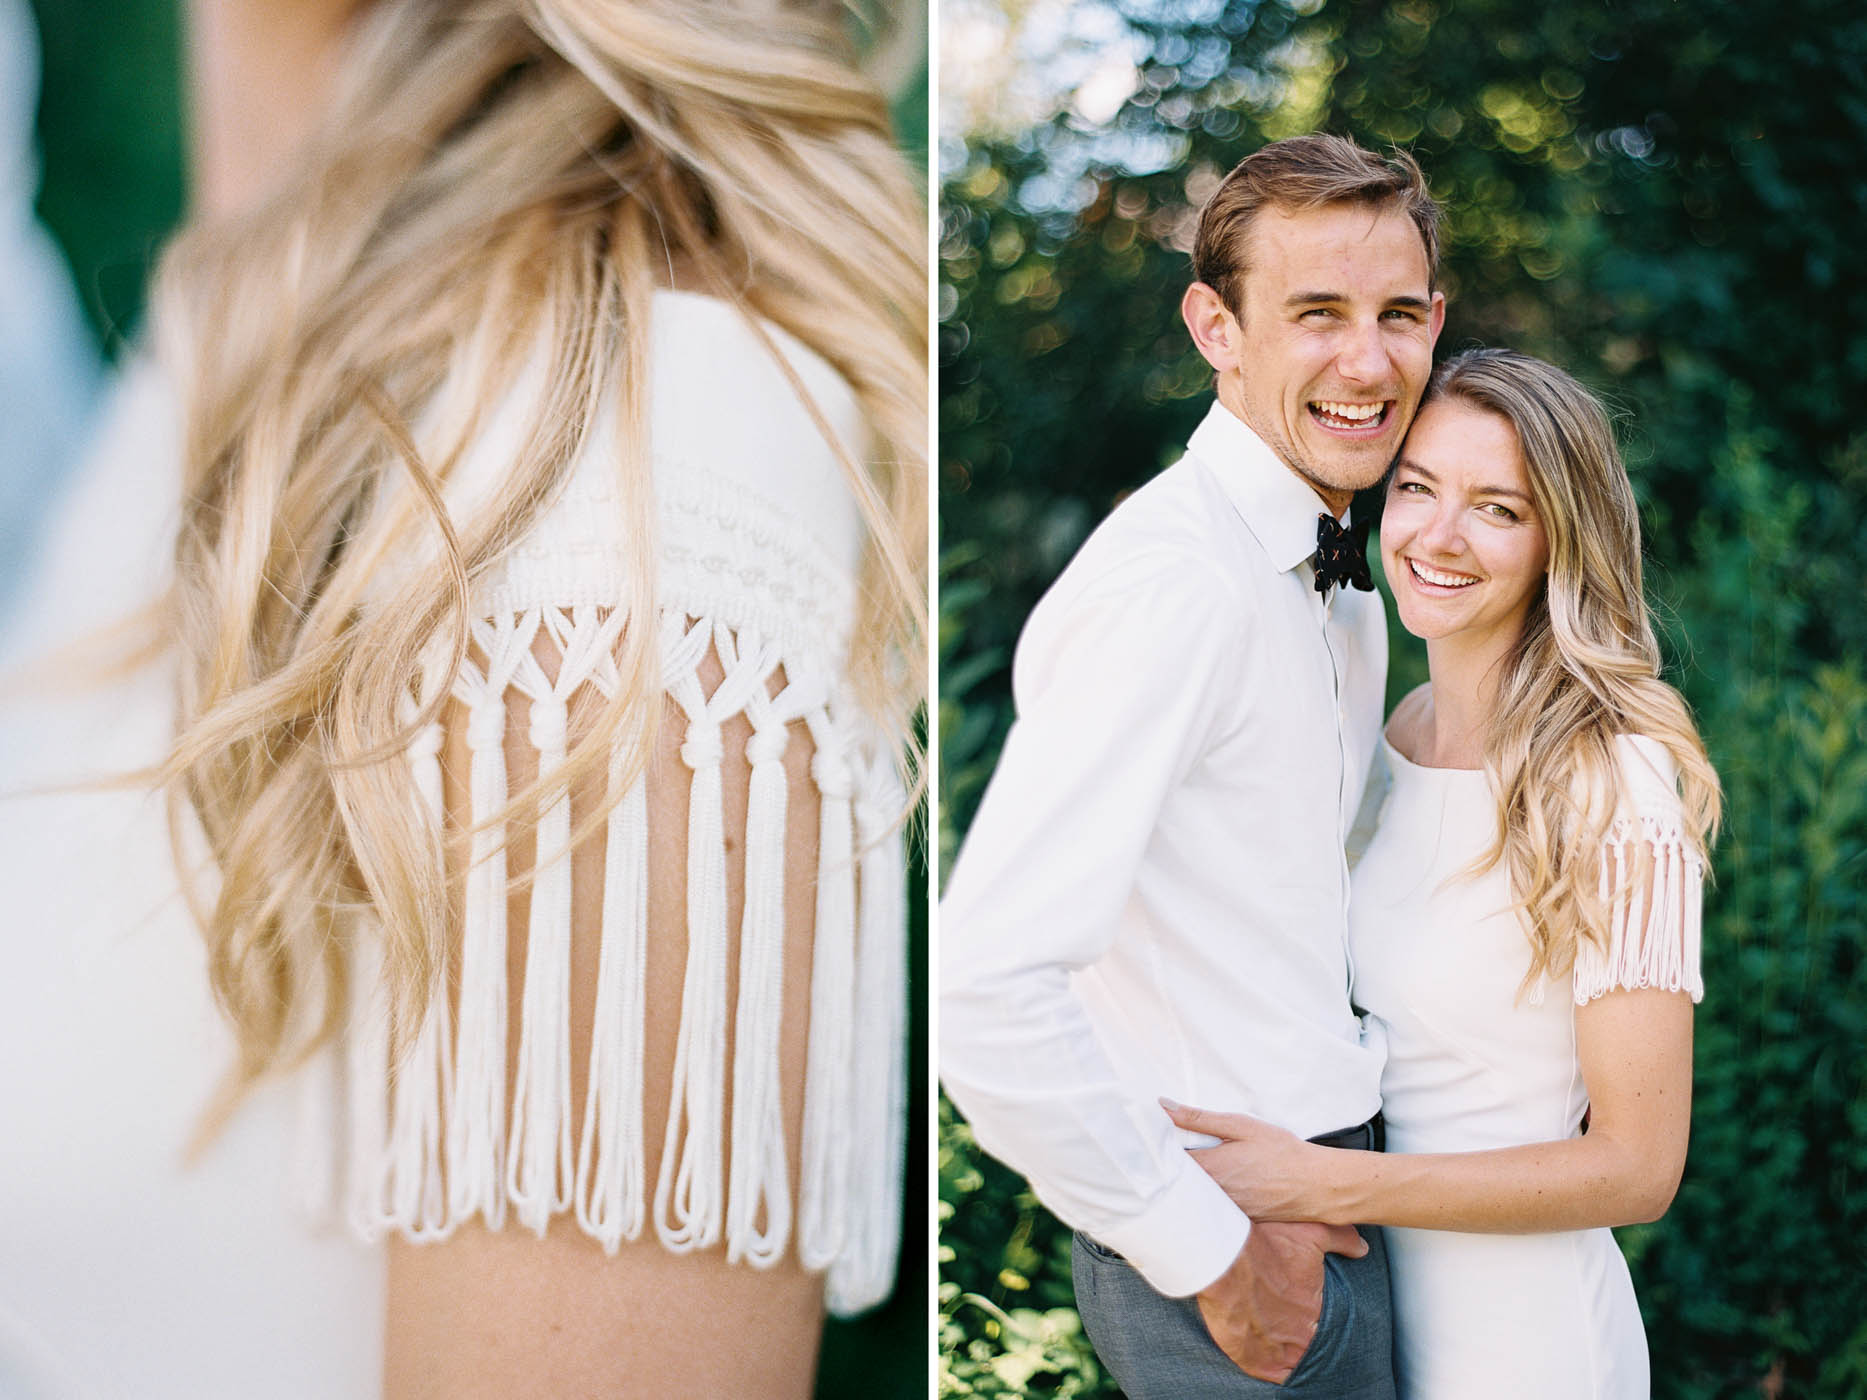 Portraits by the river at an adventurous Leavenworth wedding captured on film by top Seattle wedding photographer Anna Peters